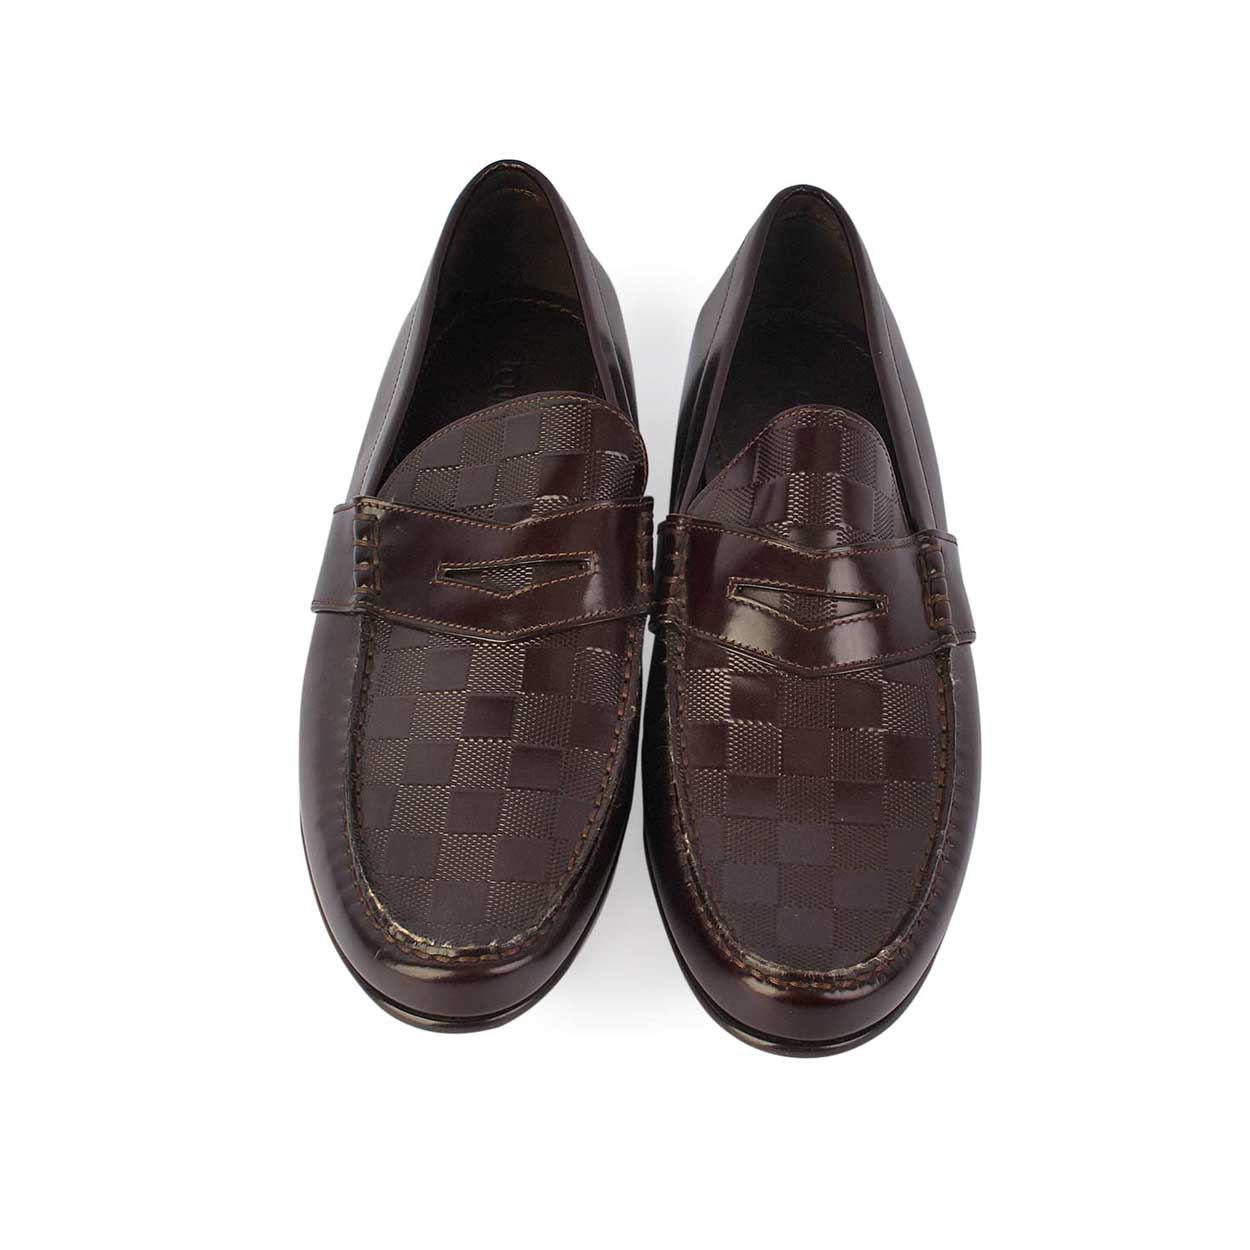 Louis Vuitton Graduation Loafers Brown - S 42 (8) - NEW - Luxity